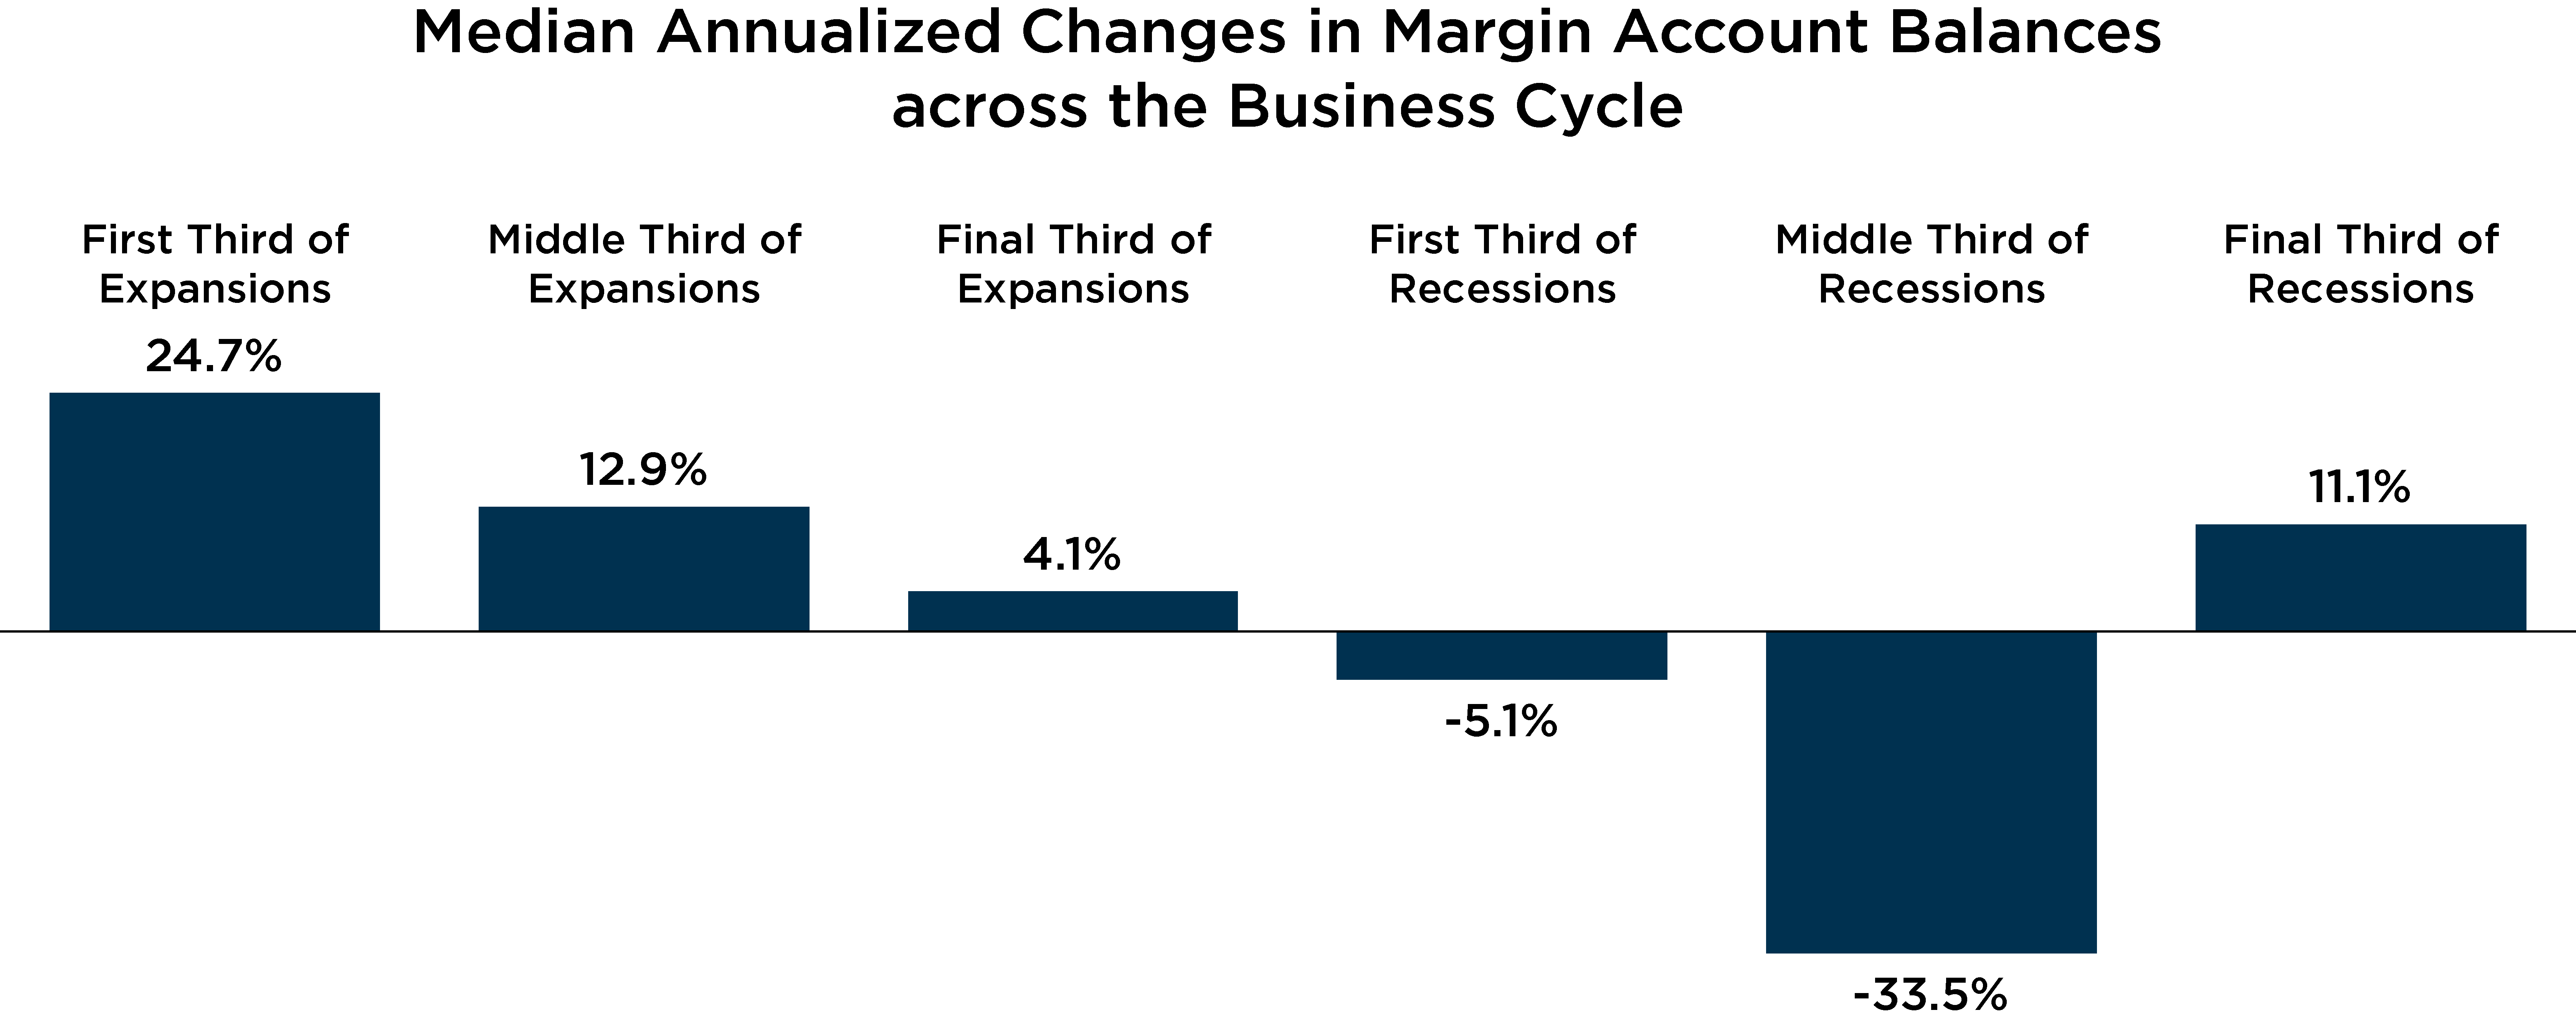 Graph depicting median annualized changes in margin account balances across the business cycle